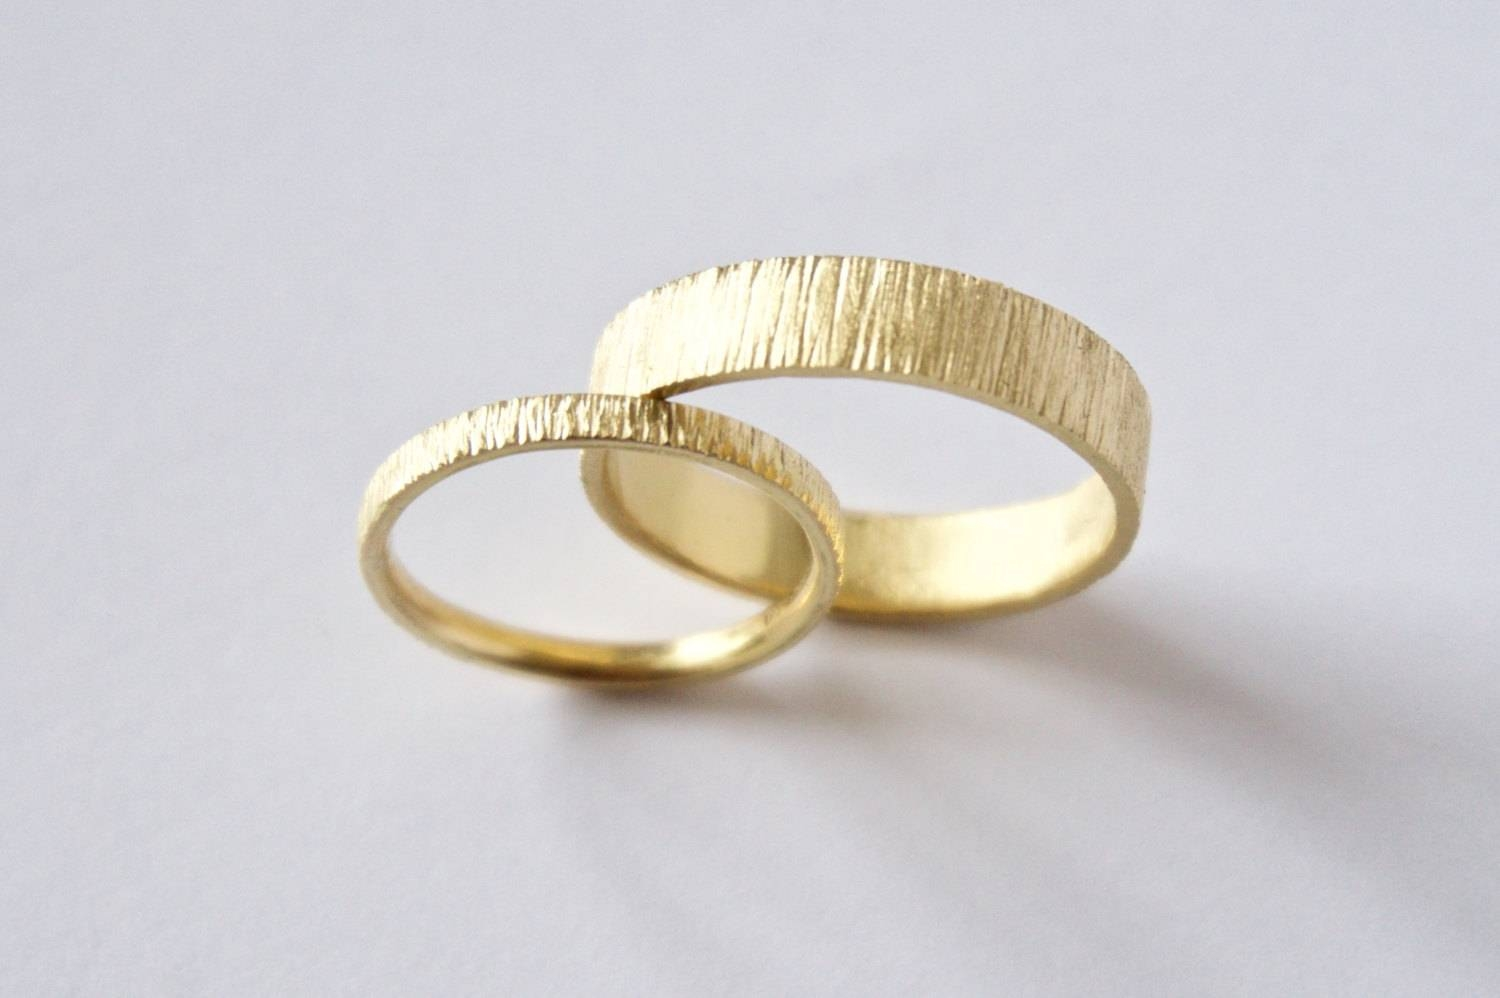 Wedding Rings : 18K Gold Ring Value 18 Karat Gold Wedding Ring Is Throughout Current 18 Carat Gold Wedding Bands (View 13 of 16)